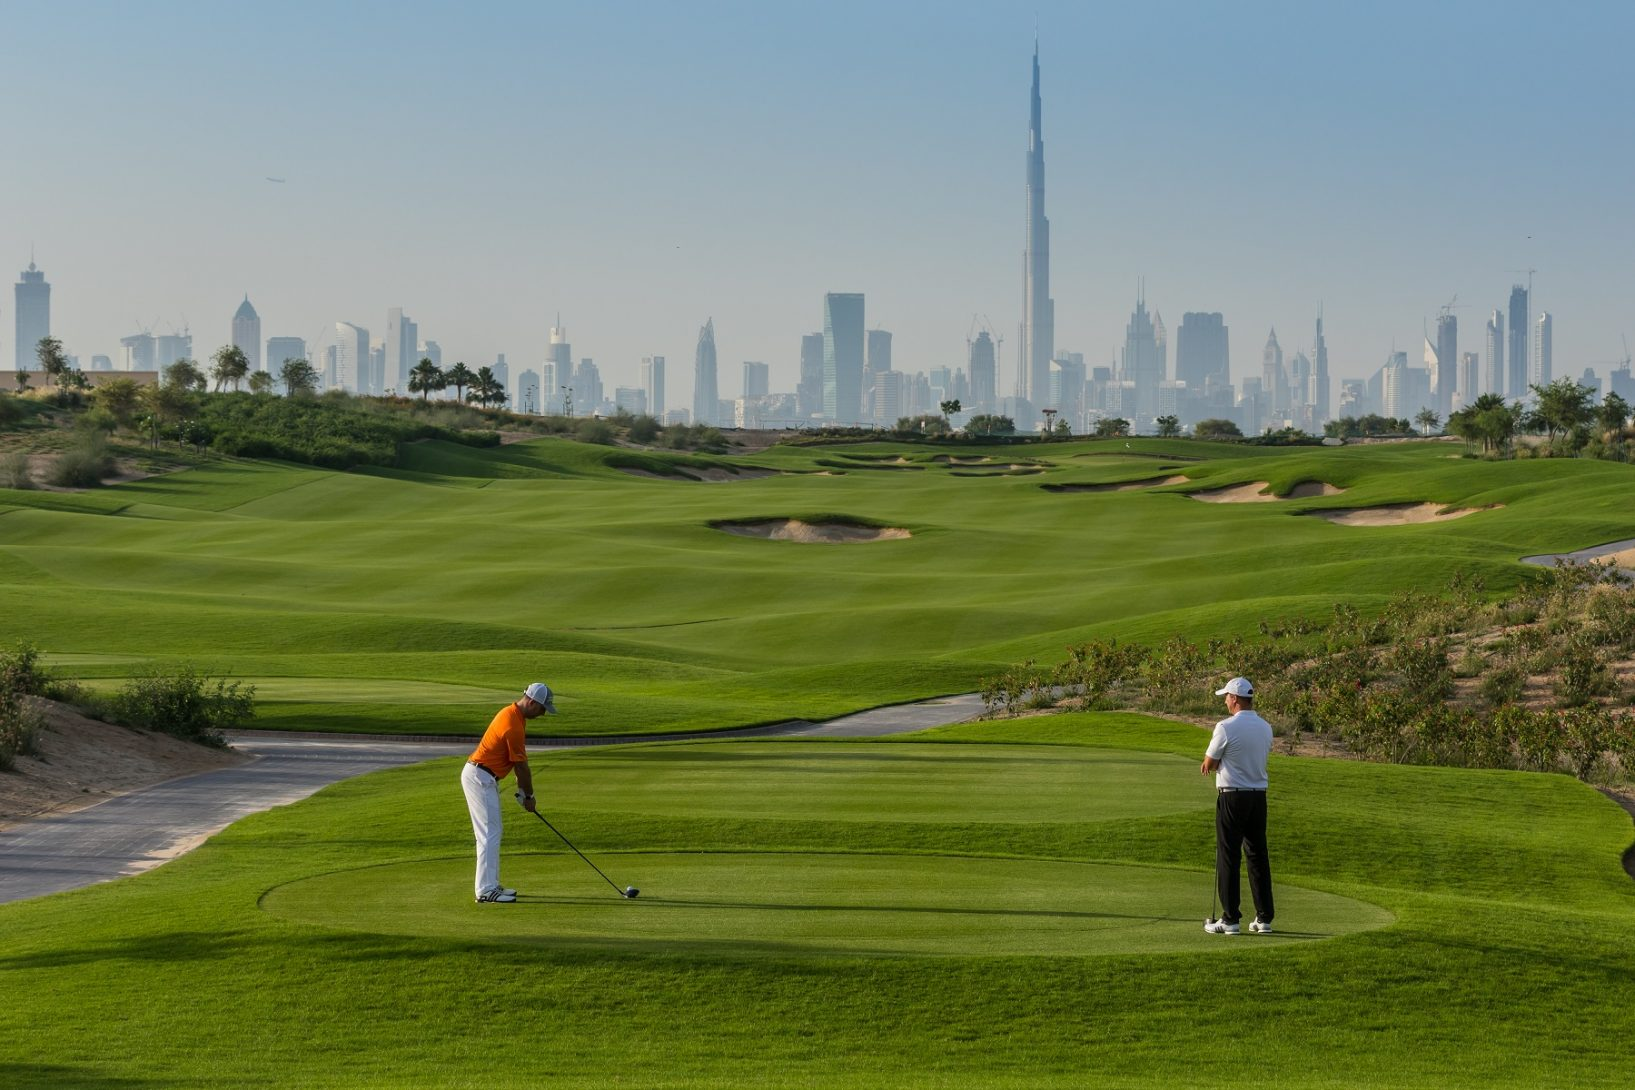 Emaar Records 30% Growth In Revenue And 28% Increase In Net Profit